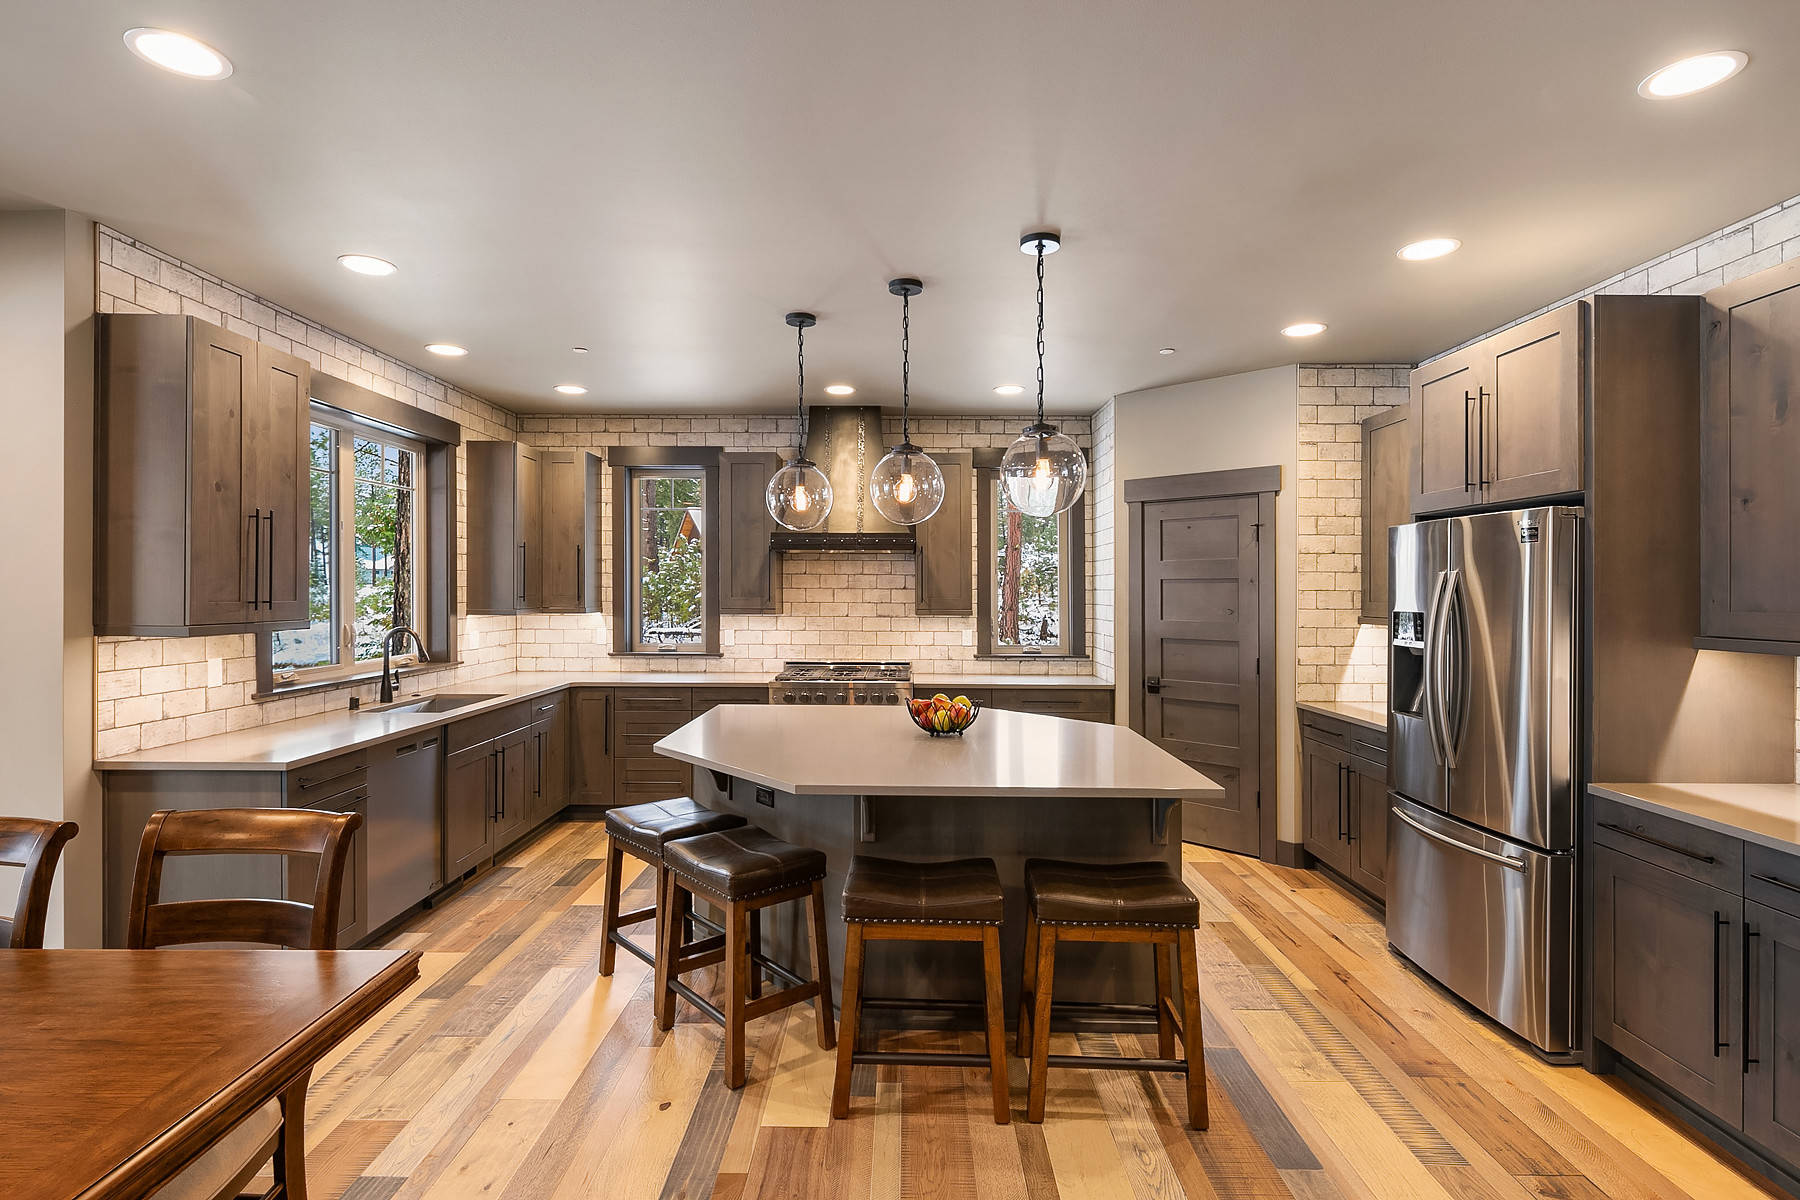 75 Beautiful Kitchen With Brown Cabinets And Subway Tile Backsplash Pictures Ideas March 2021 Houzz